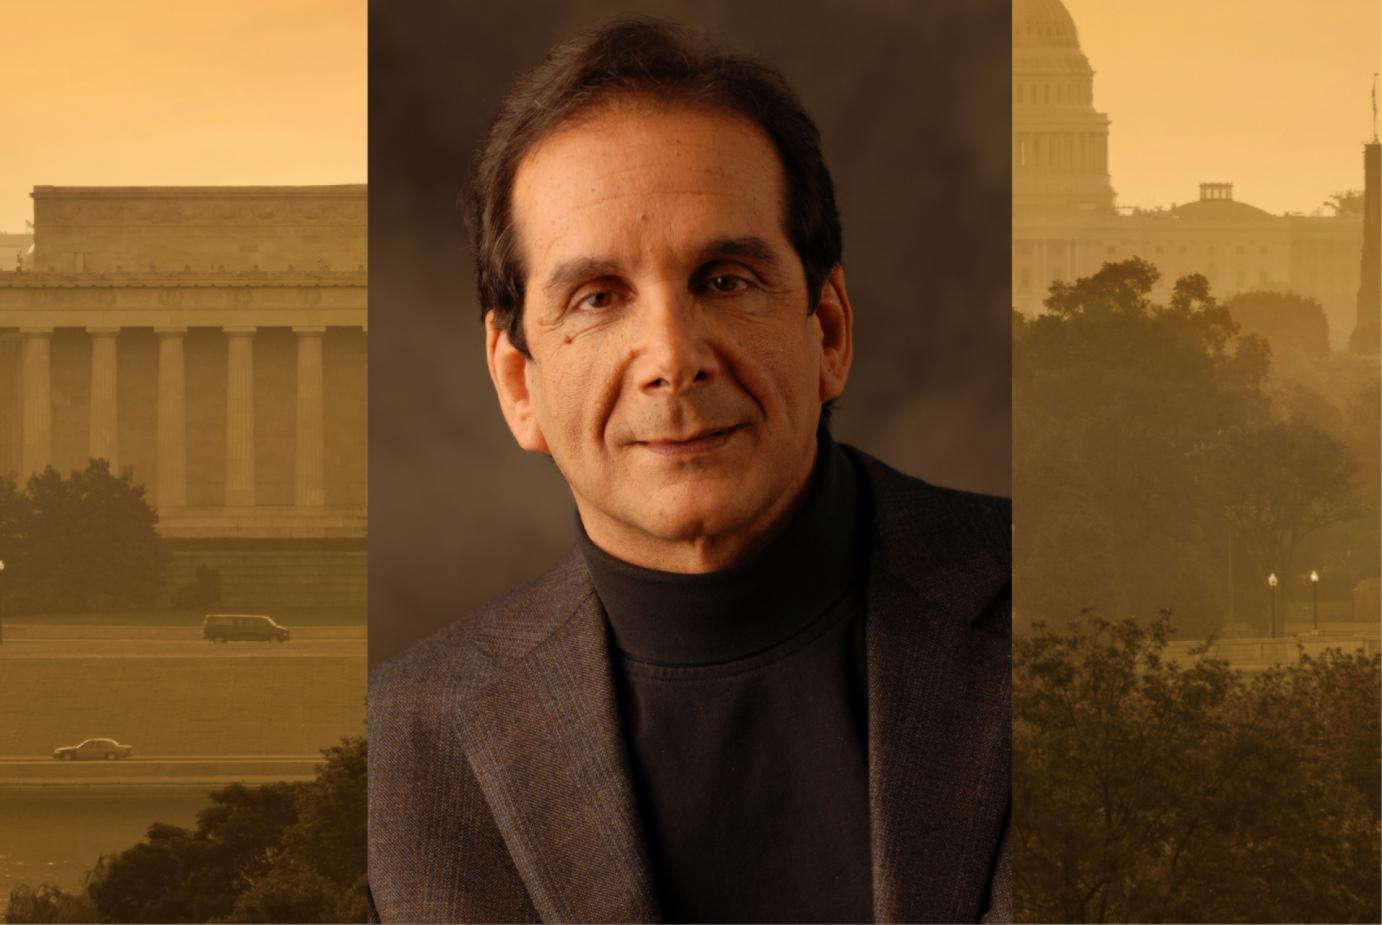 Commentator Charles Krauthammer to Speak on Campus on March 9